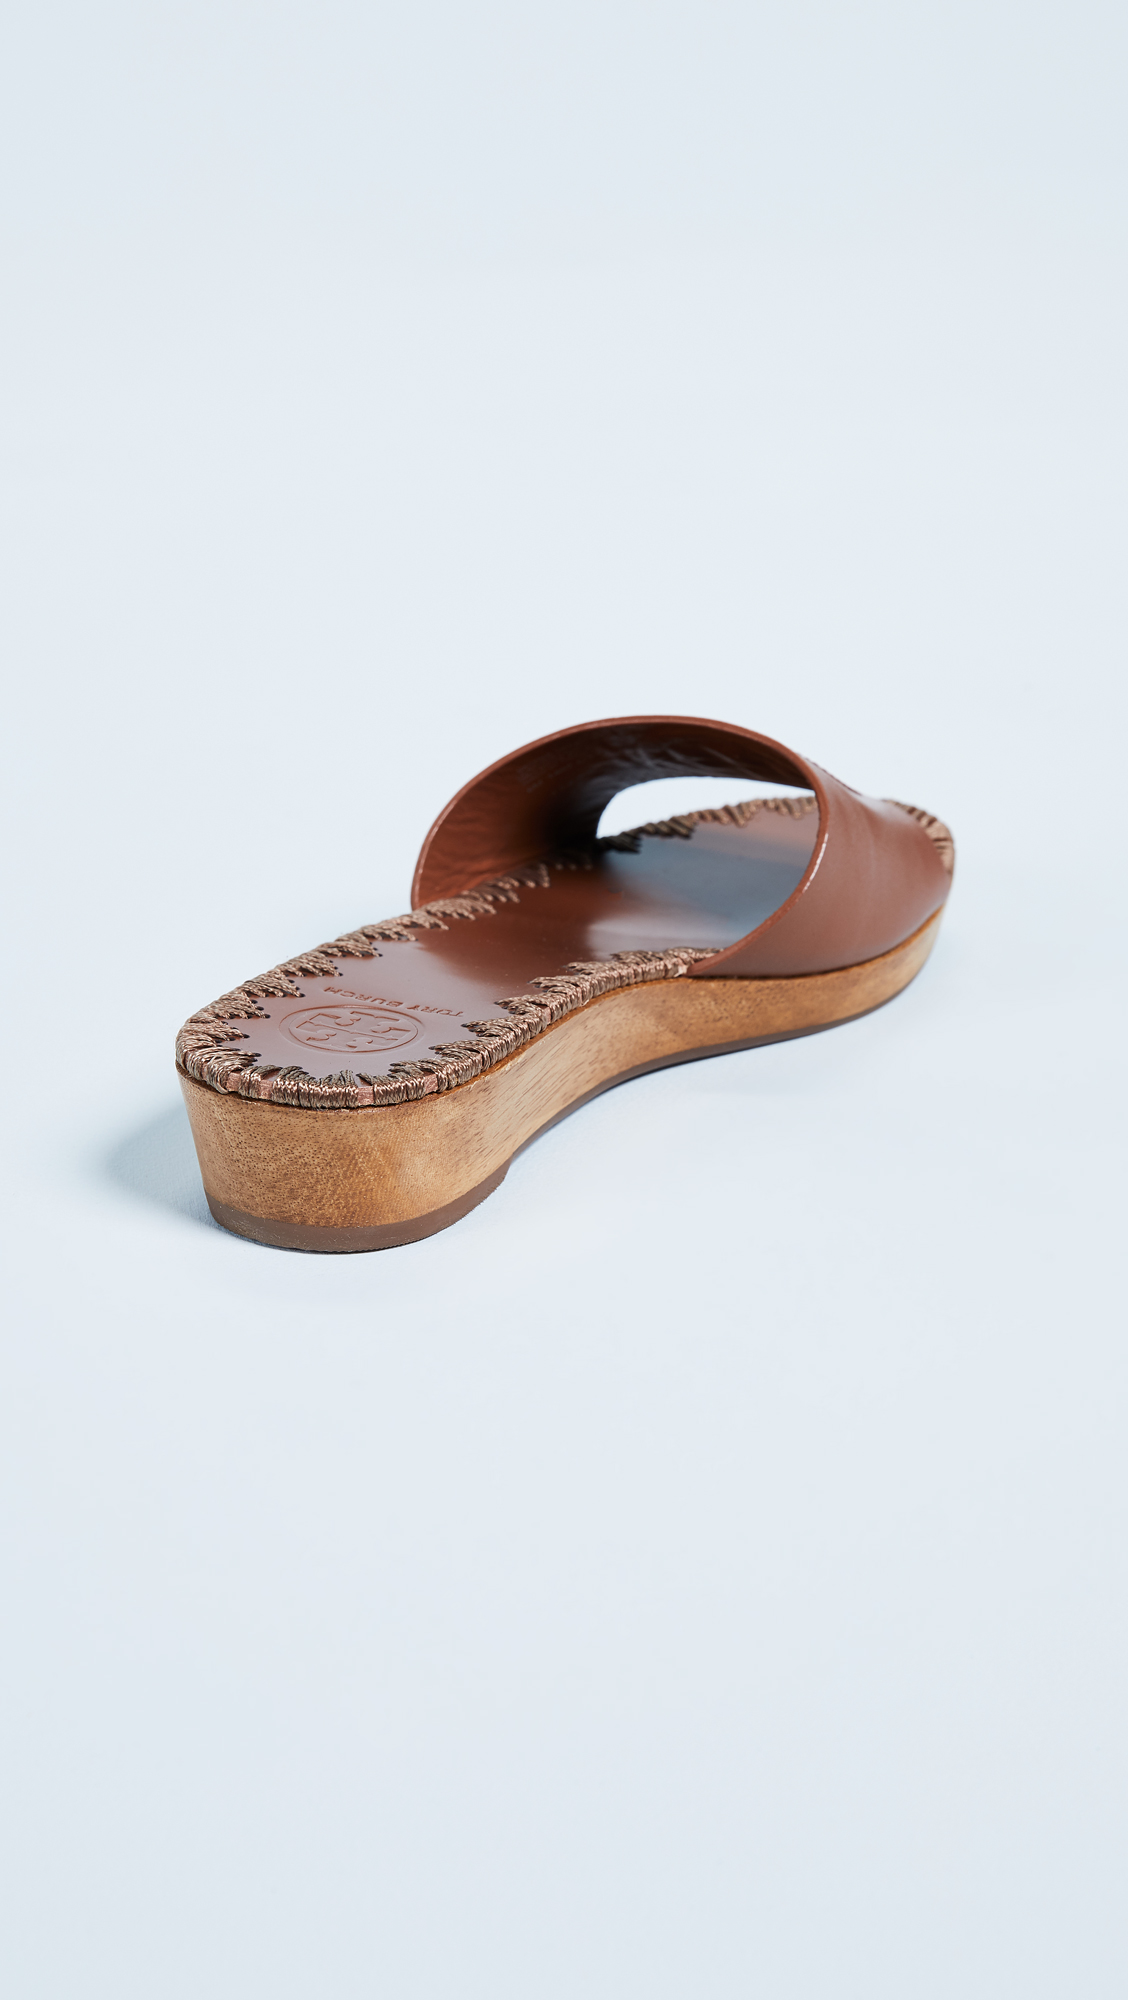 75c2d72e1be Tory Burch Patty 35mm Wedge Slides